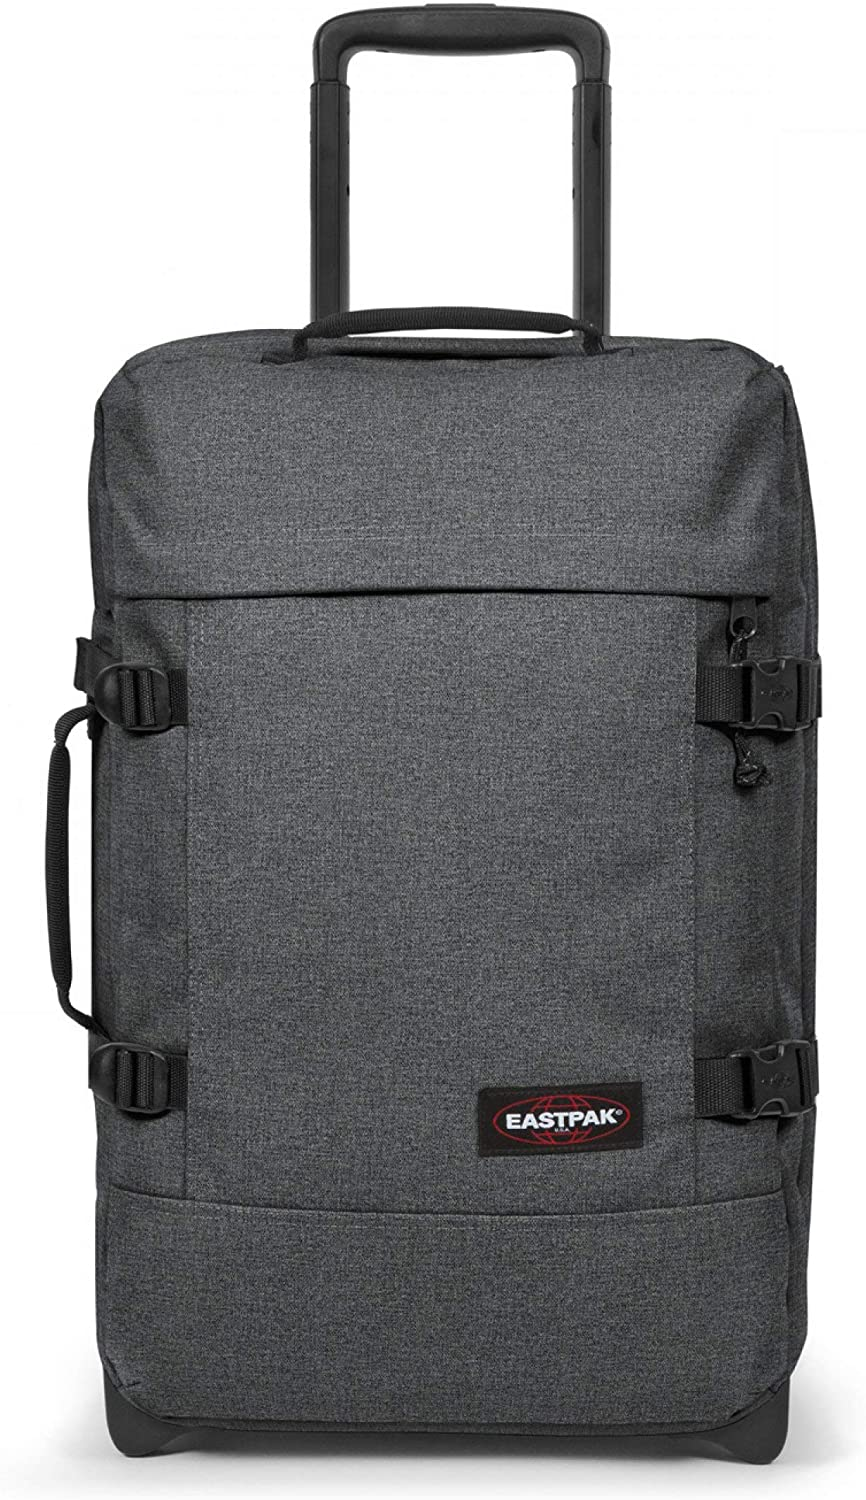 Eastpak Suitcase with Wheel